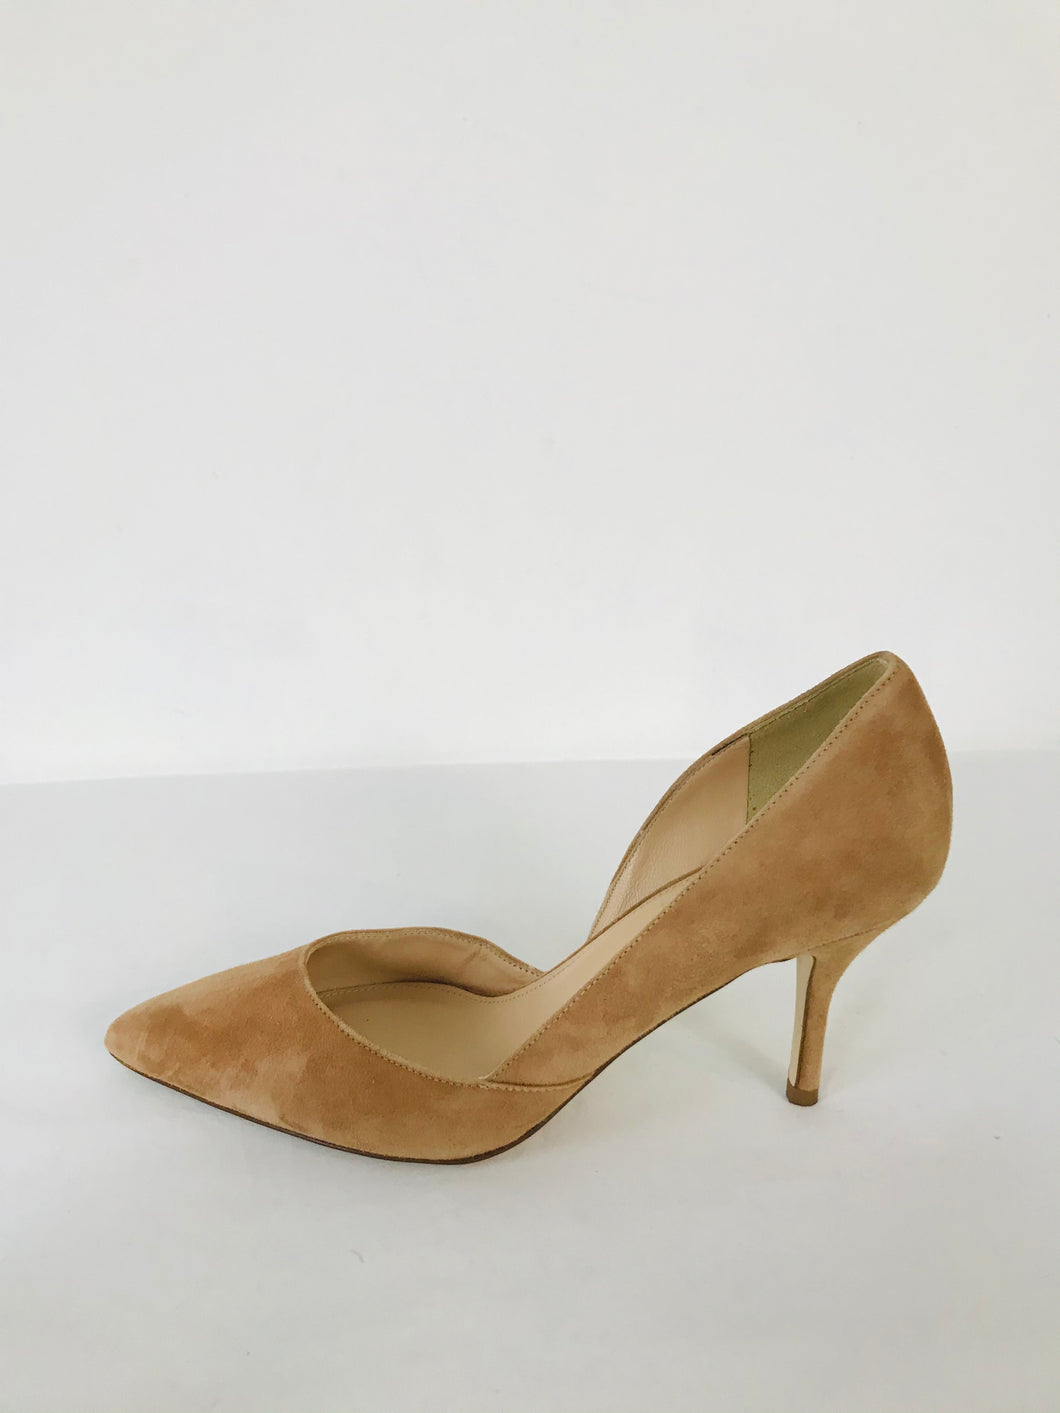 J. Crew Women's Suede D'Orsay Heels | US6 UK4 | Tan